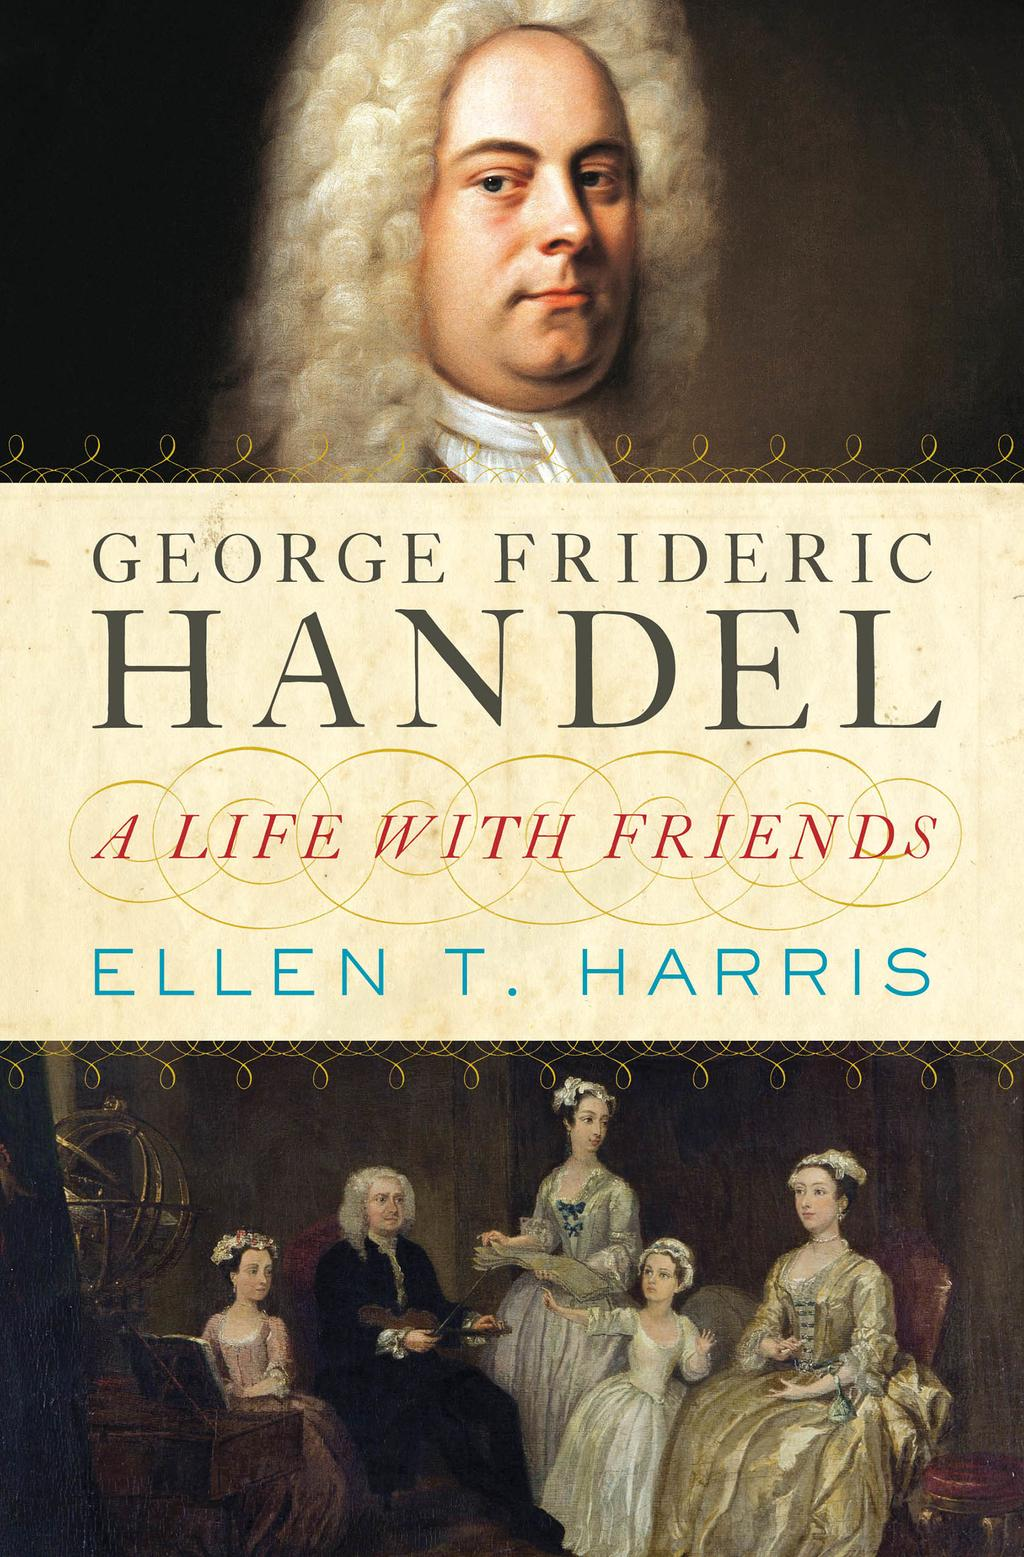 an introduction to the life of george frederic handel George frideric handel is generally considered the second most important baroque composer after bach unlike bach's nearly complete focus on church the life and musical influence of george frideric handel 2025 words - 9 pages occupations as handel traveled, he was introduced to many.